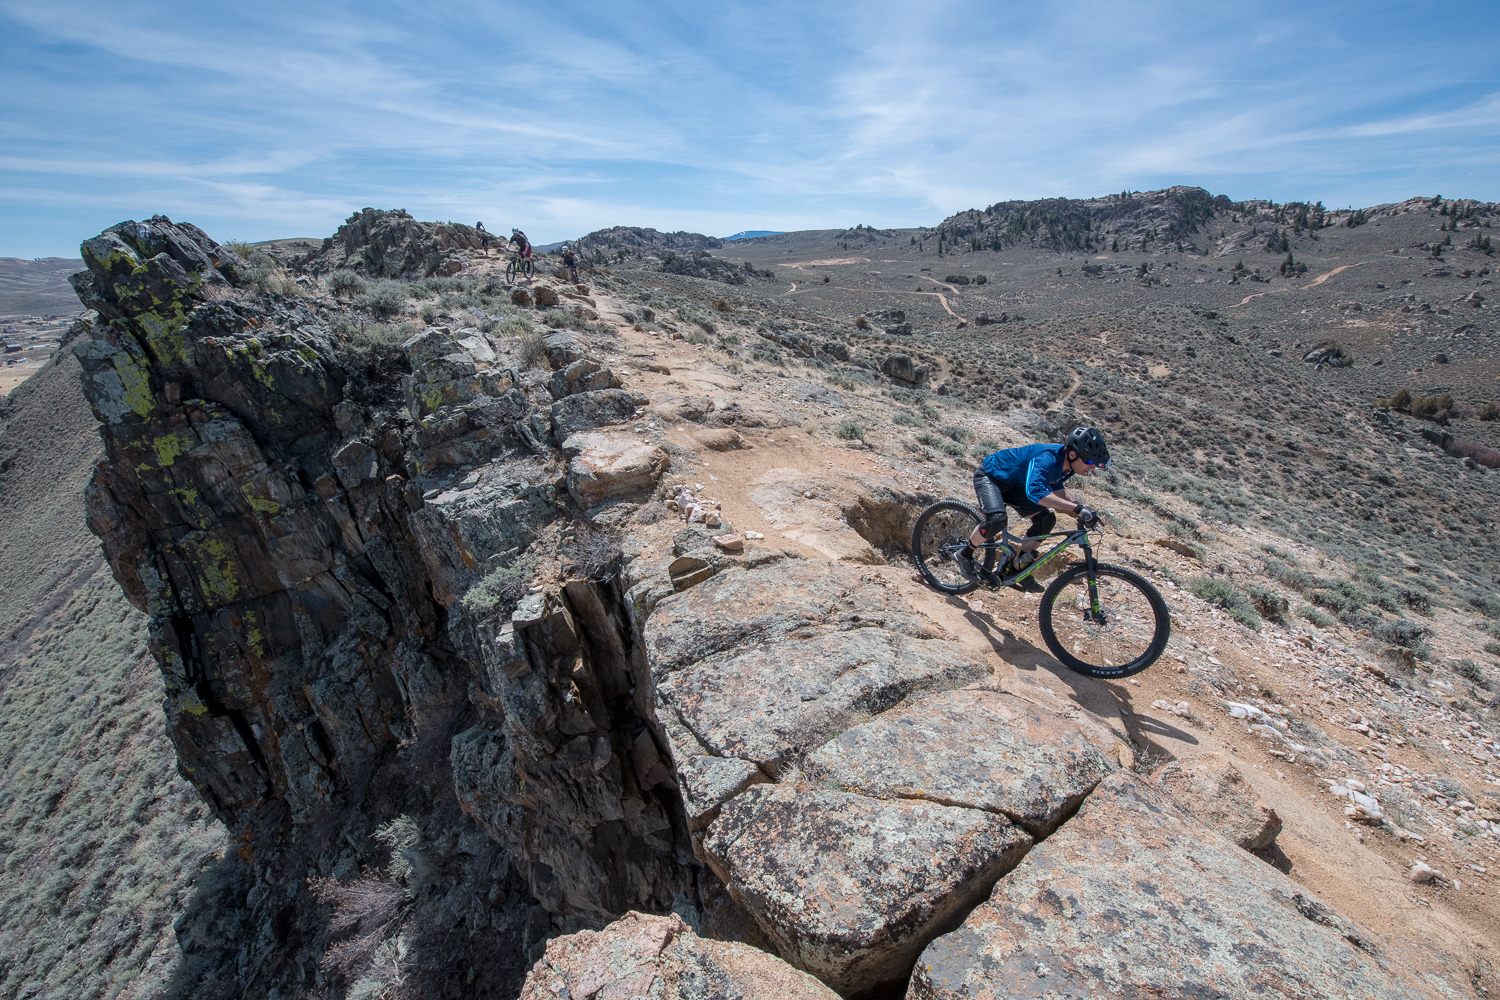 The numerous lines choices at Hartman Rocks make it a mountain biker's playground. Photo by Dave Kozlowski